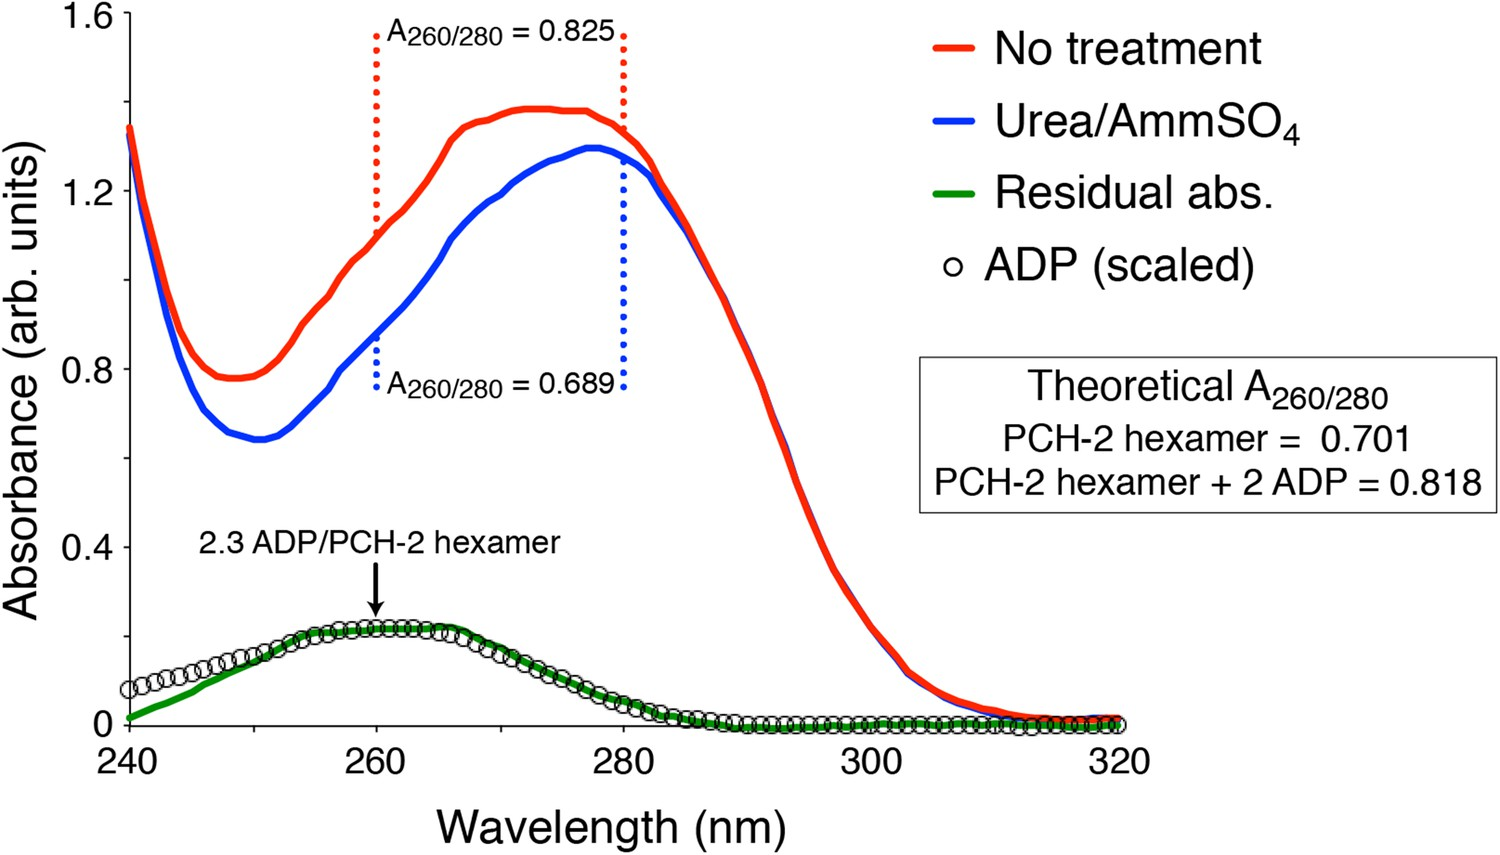 Trip13 Is A Protein Remodeling Aaa Atpase That Catalyzes Mad2 2single K Type Thermocouple Amplifier And Digital Converter Circuit Uv Absorbance Spectra Of Pch 2